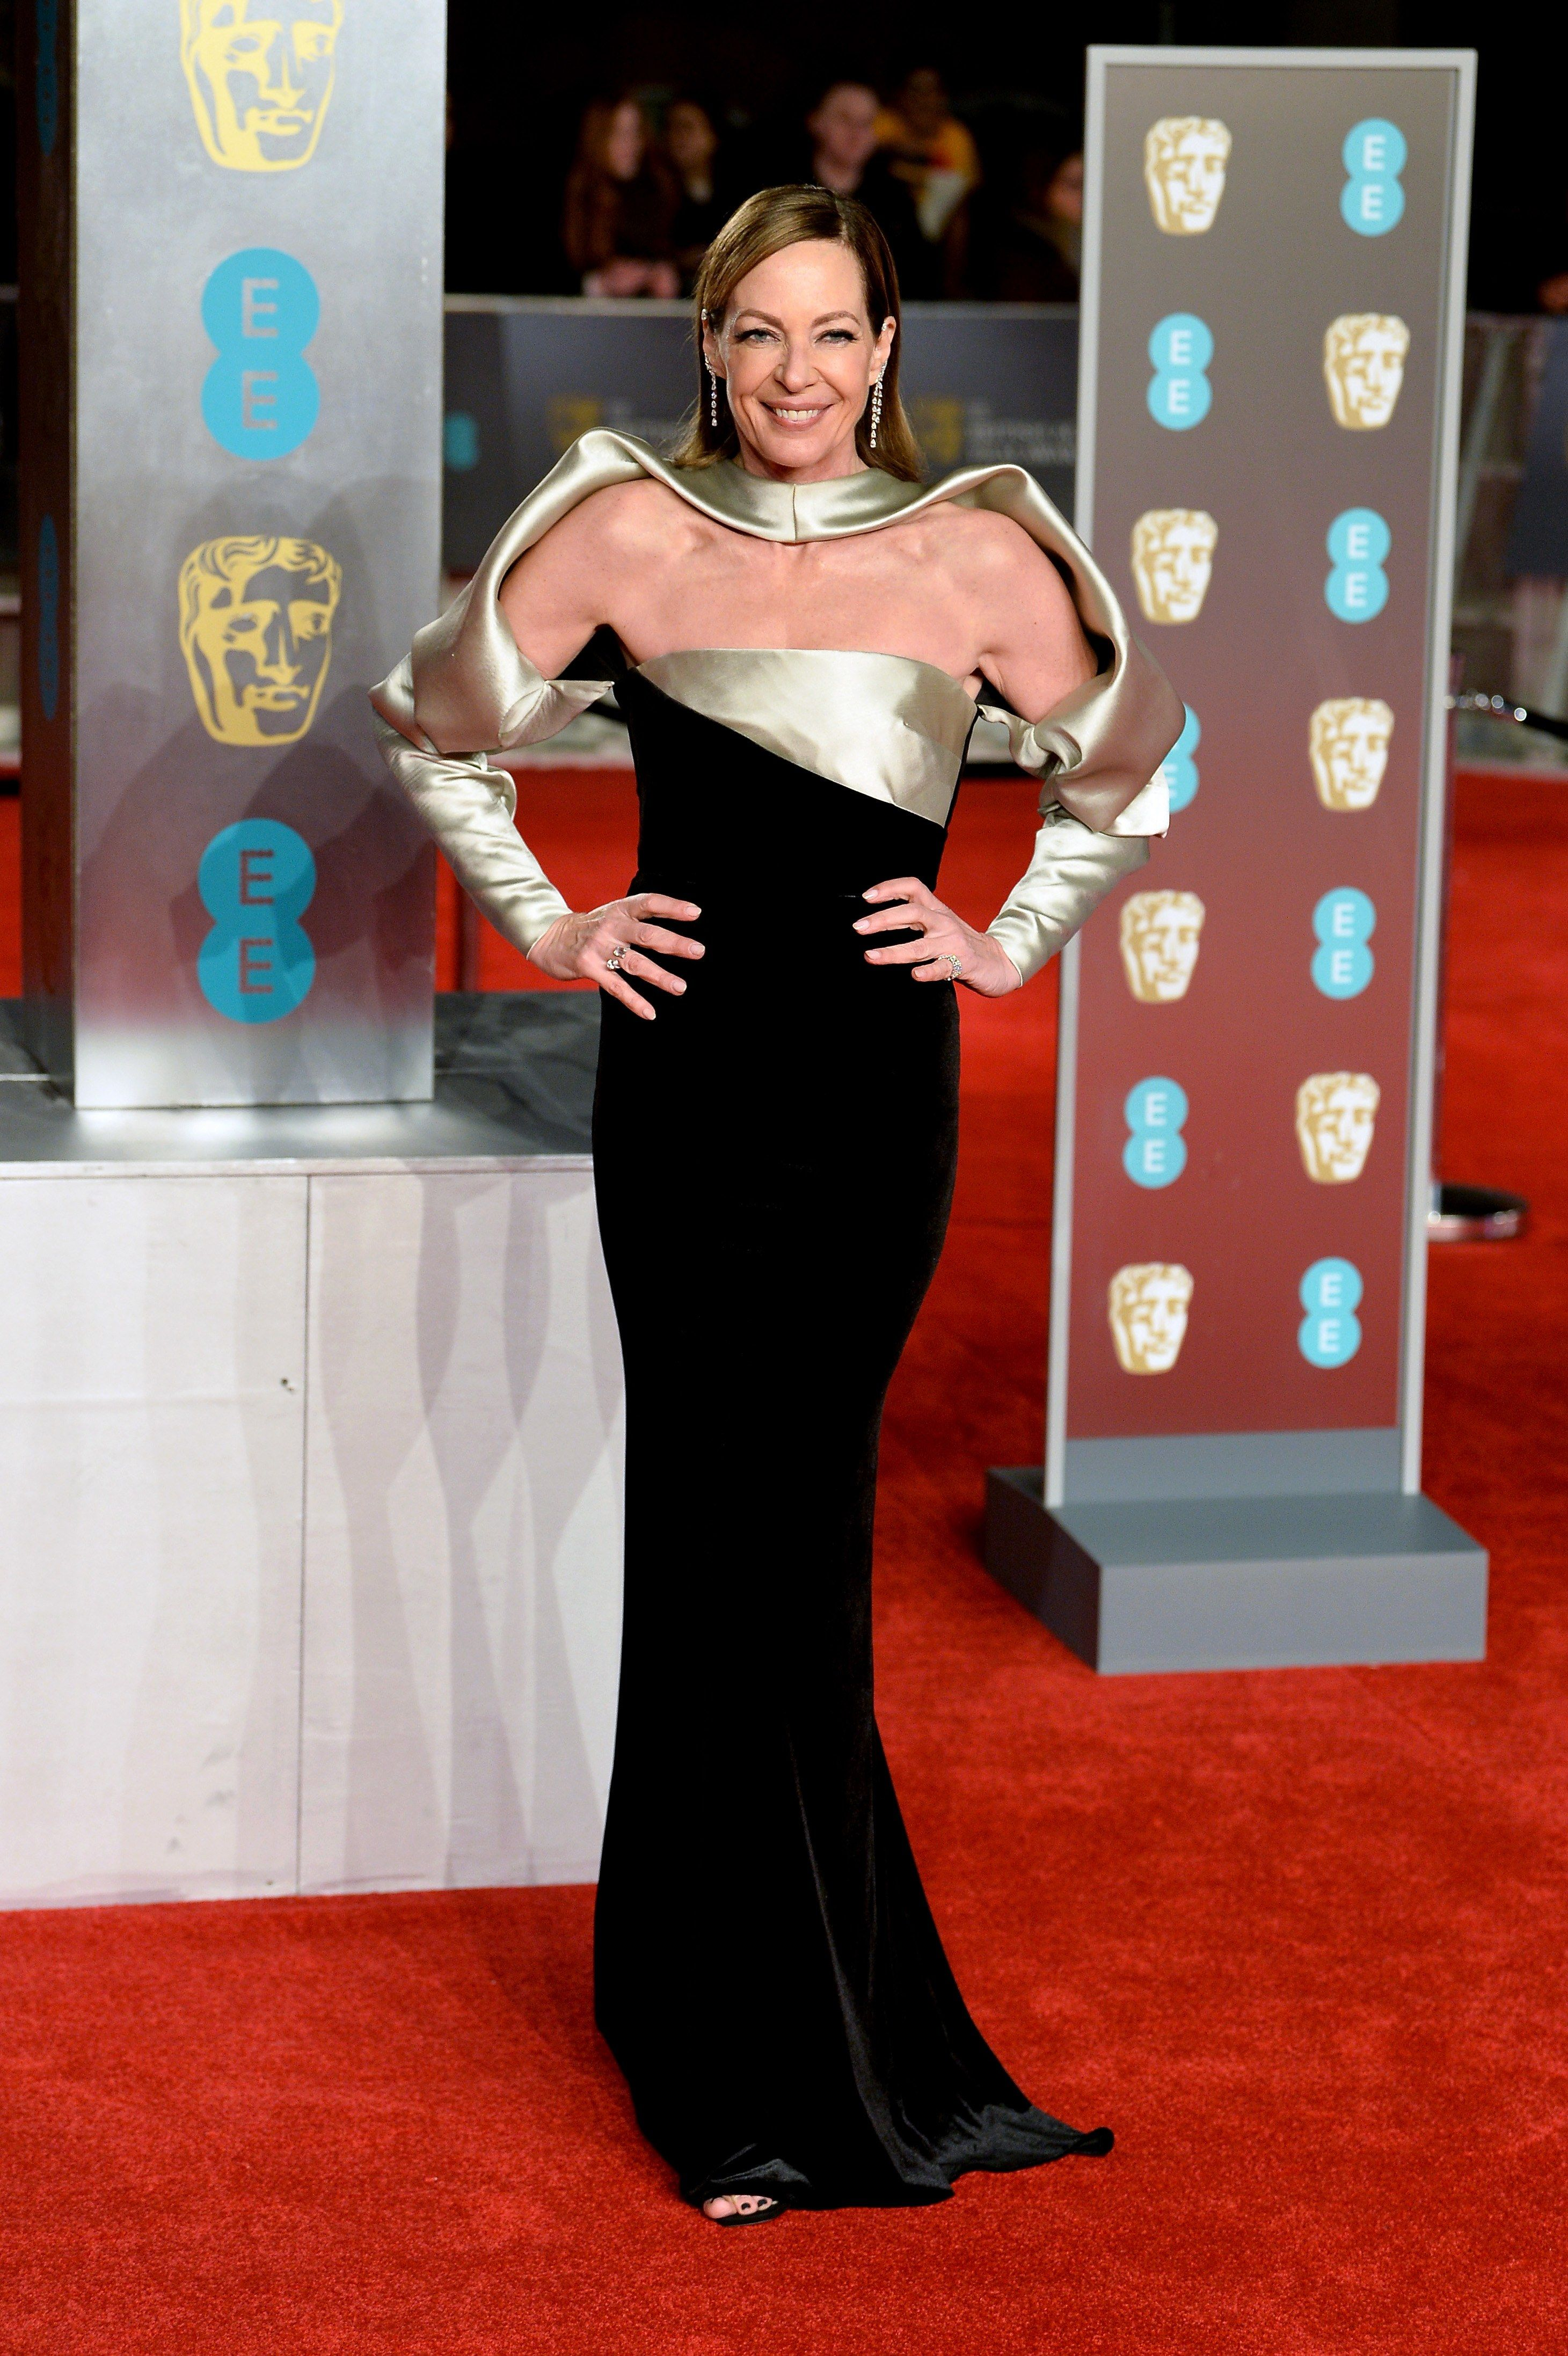 Allison Janney in Bibhu Mohapatra at BAFTA 2019. Image: Courtesy Getty